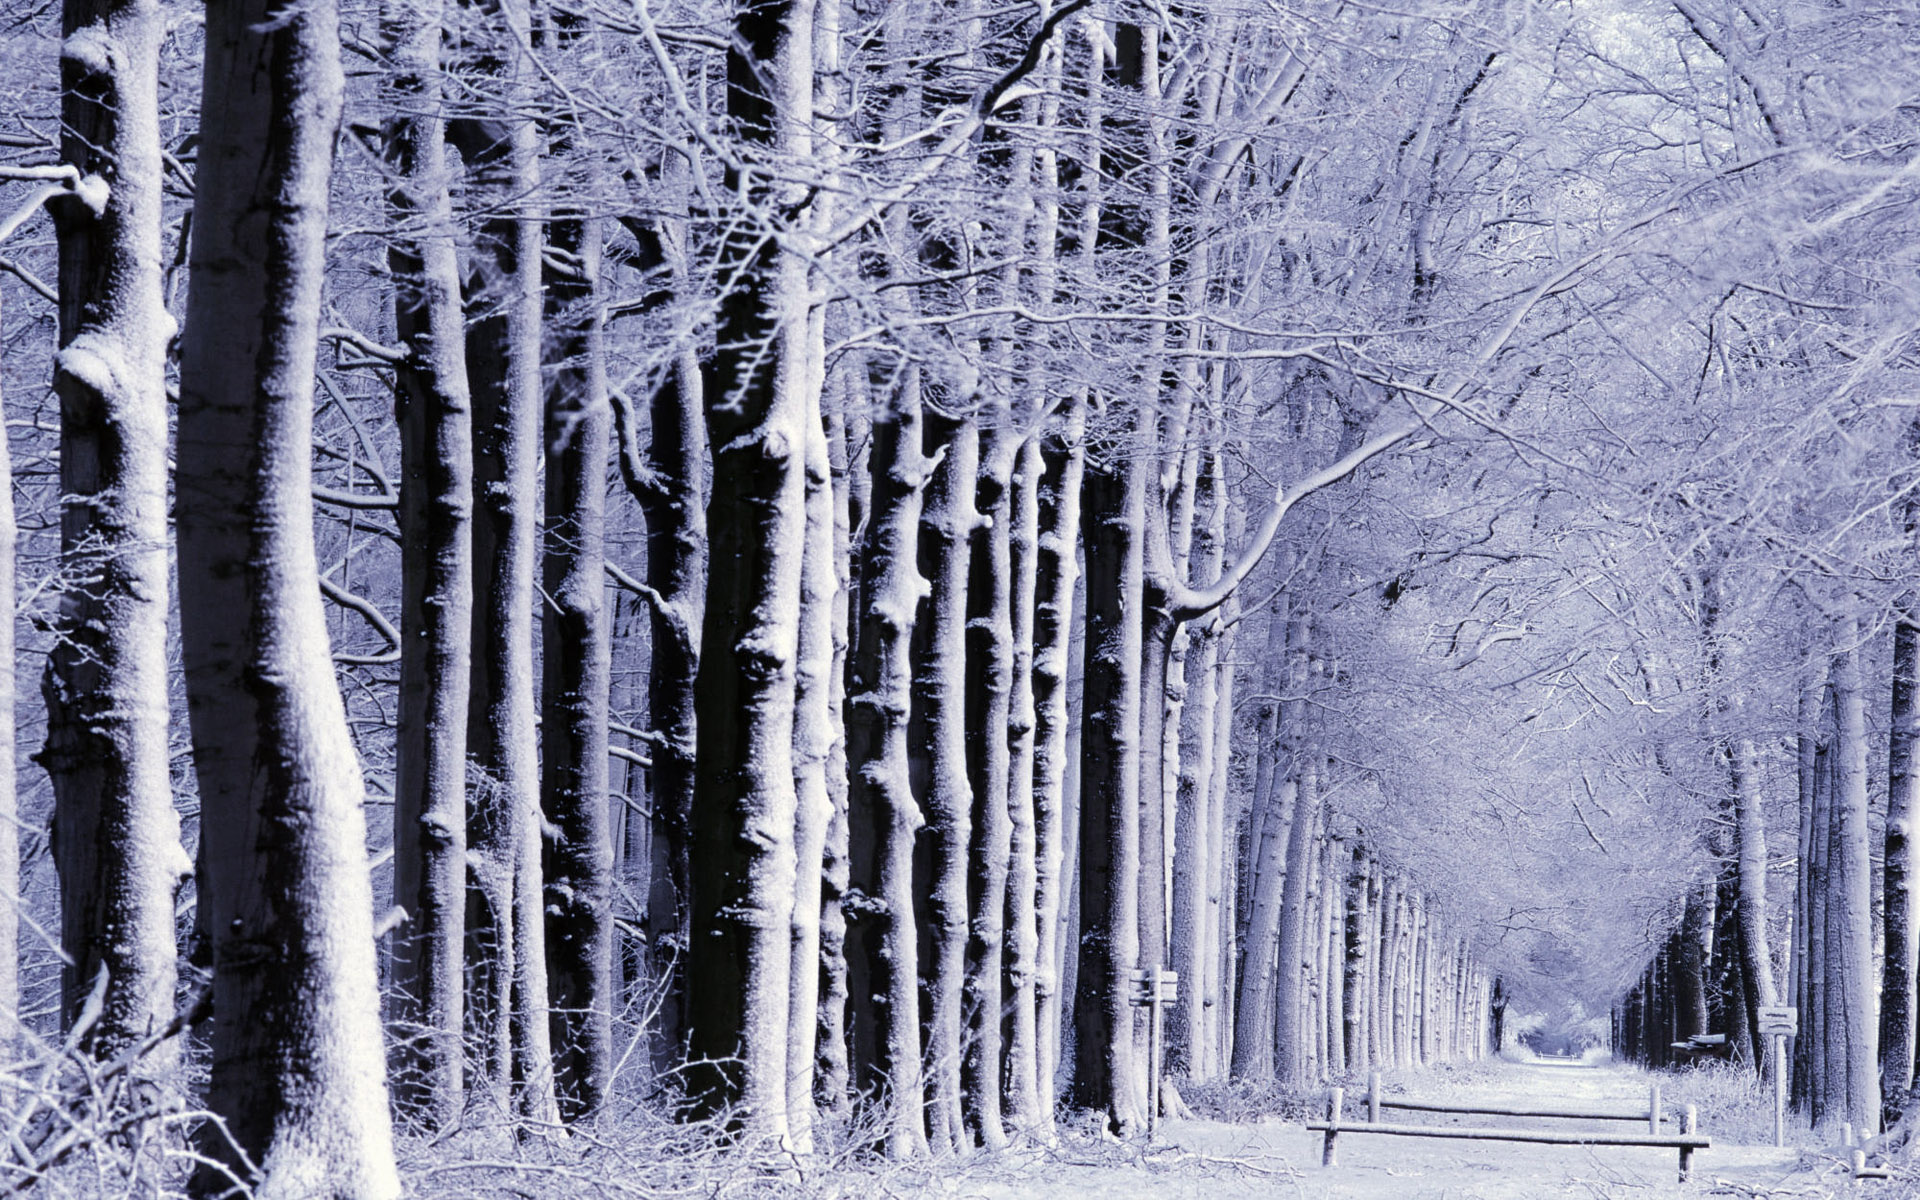 Path through forest of snow-covered trees, Europe